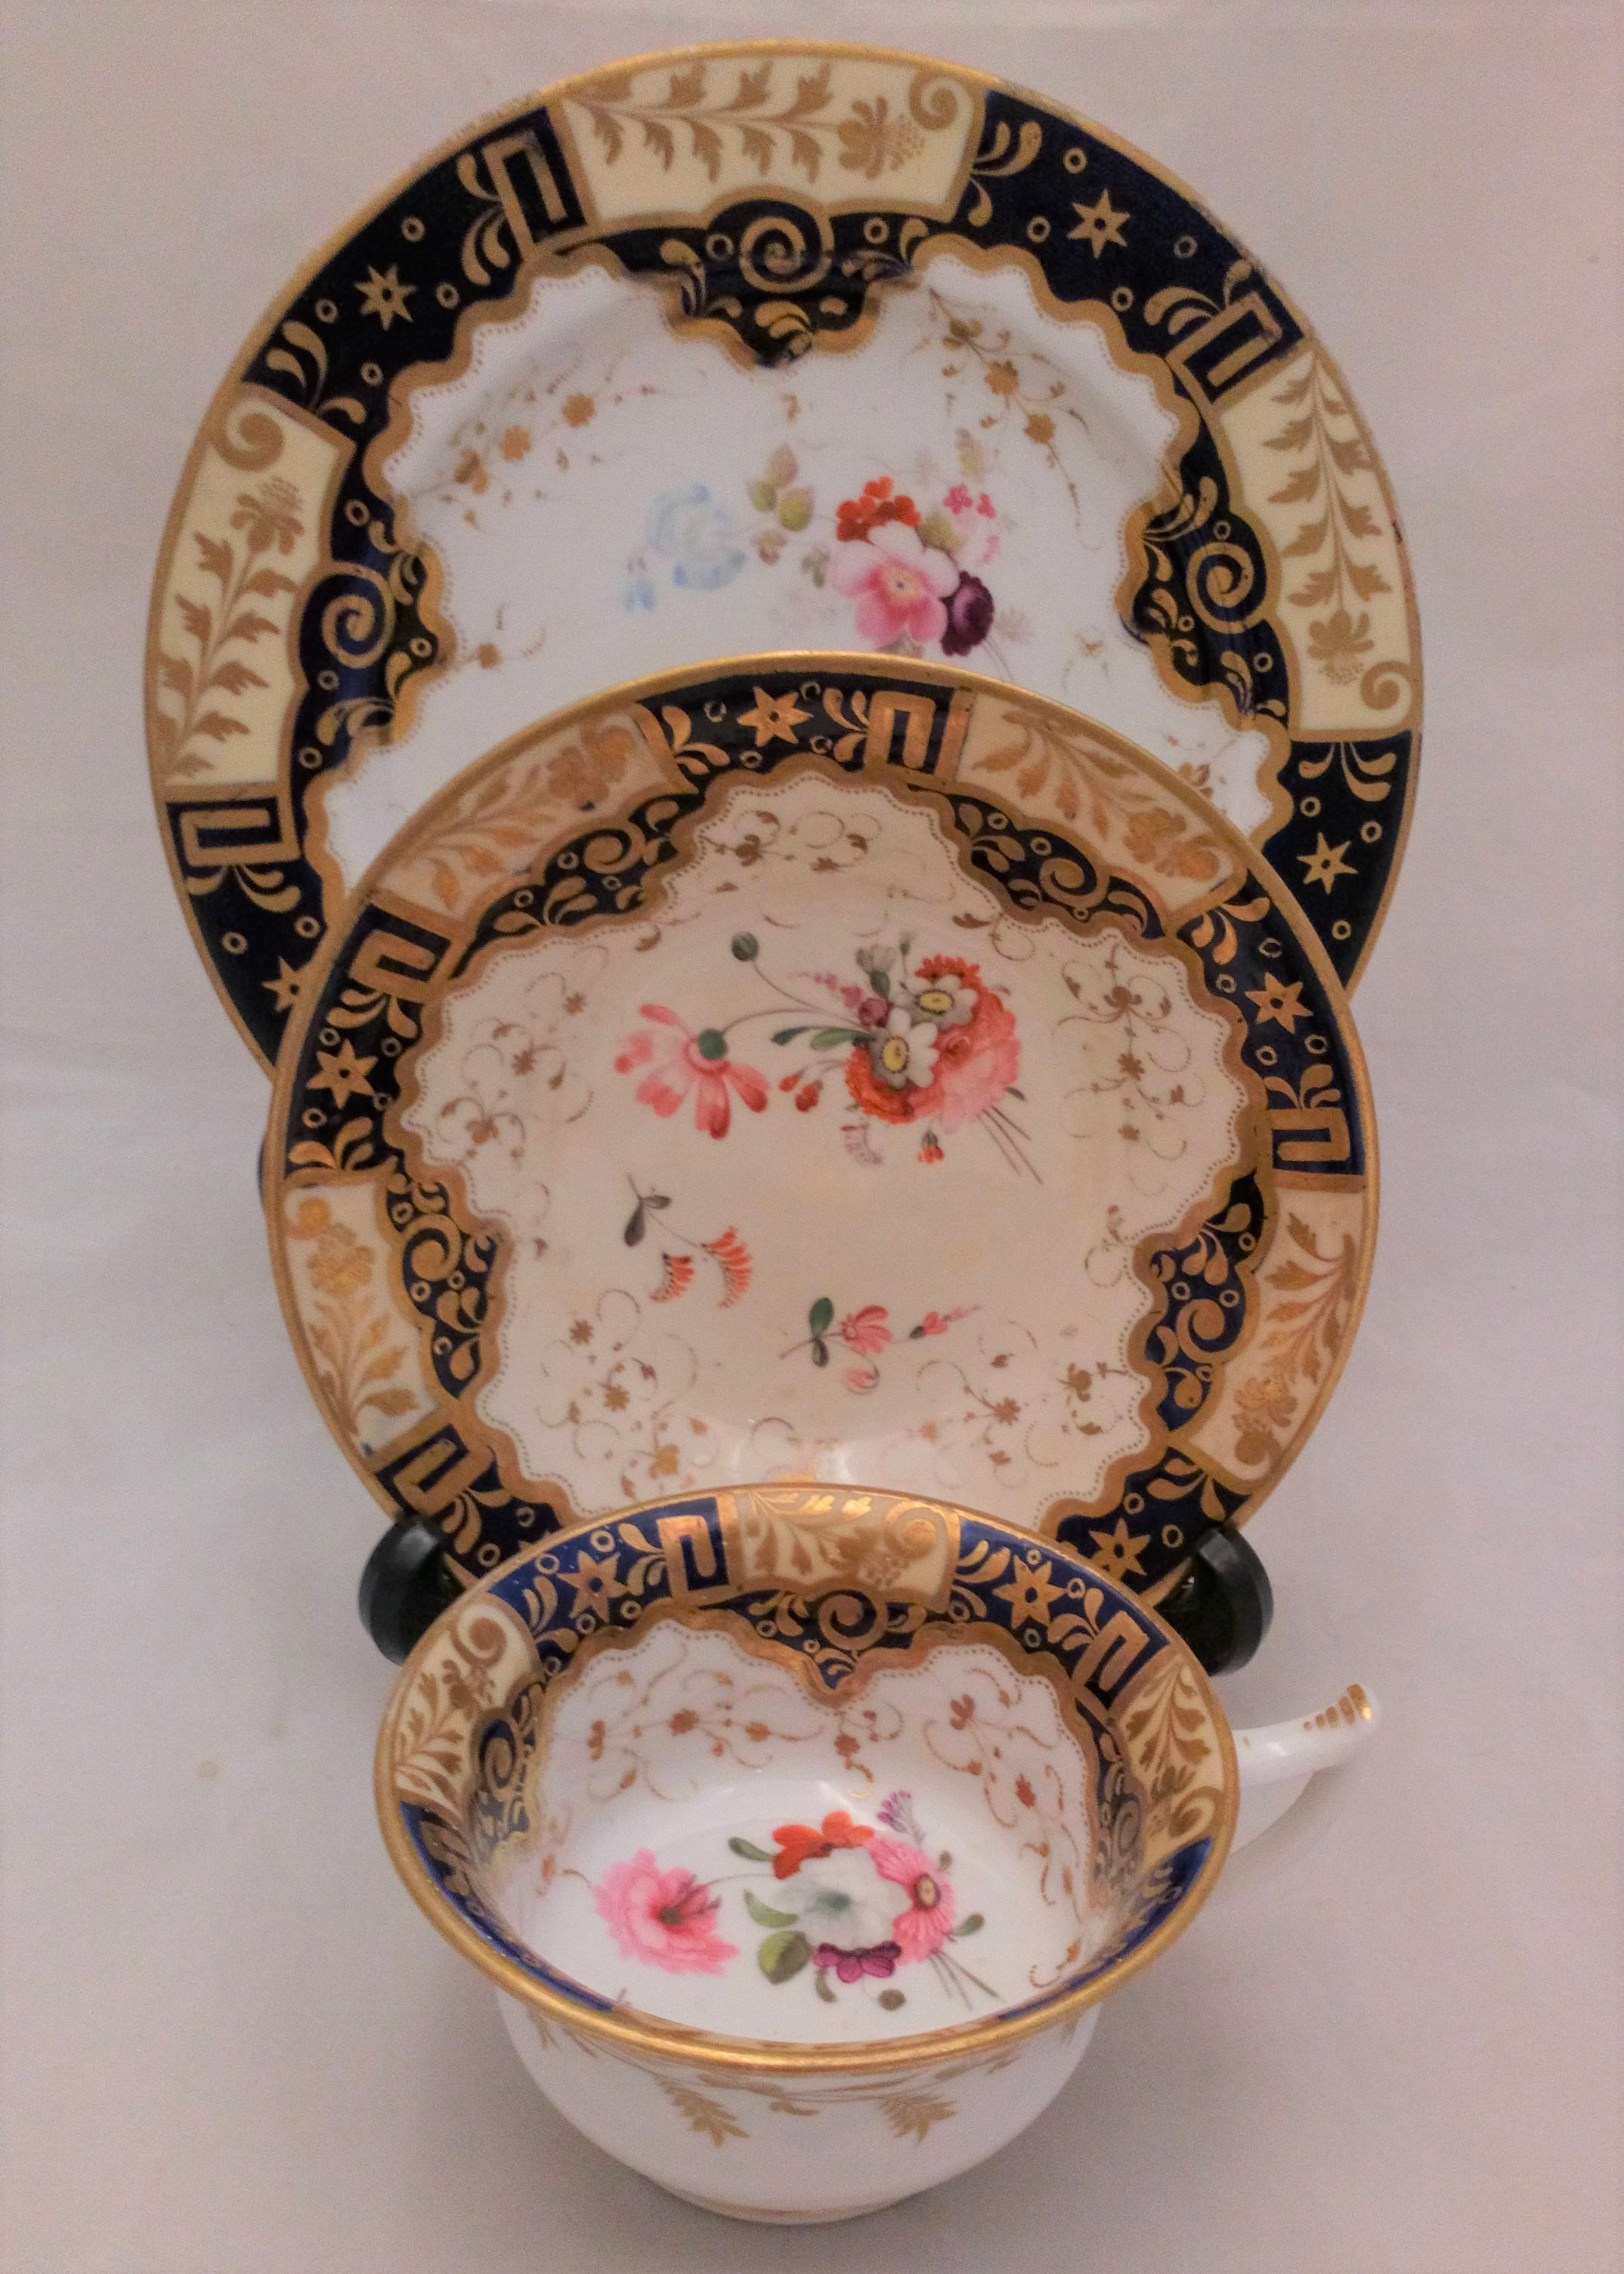 Antique Regency Porcelain Etruscan Shaped Cup, Saucer and Plate hand painted pattern number 812 attributed to John Yates circa 1820 no2